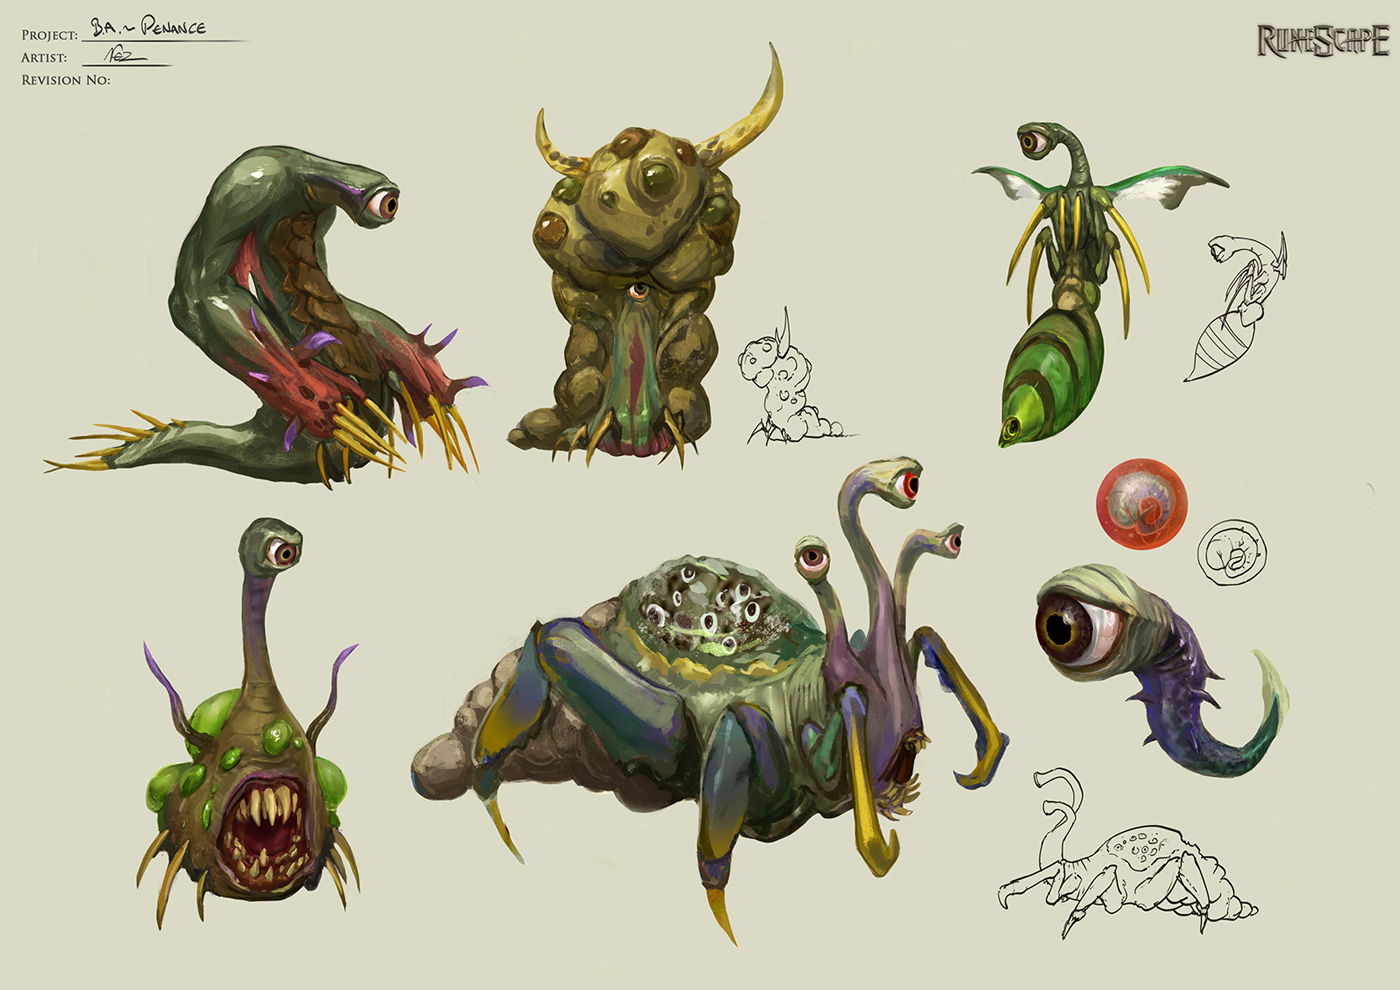 Penance creature concept art